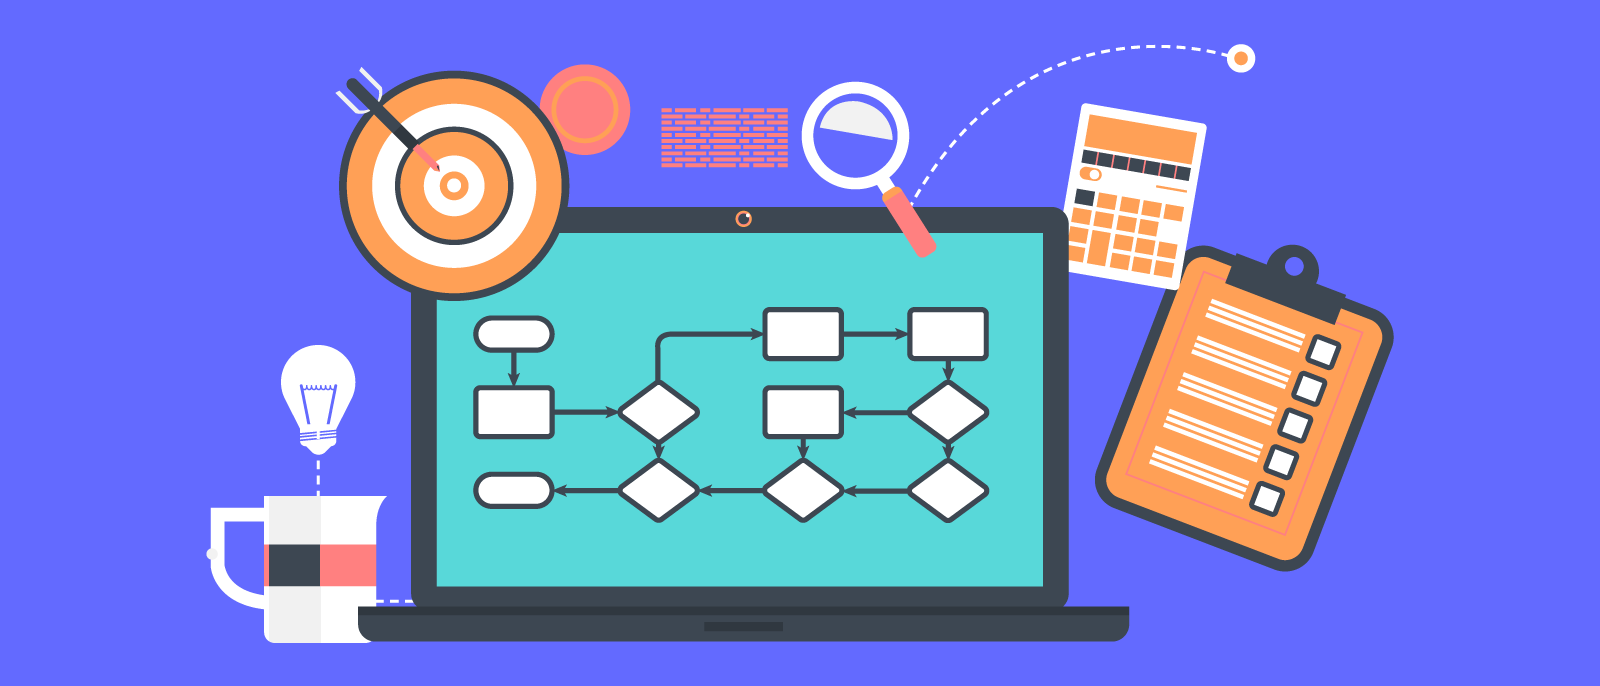 3 Tips for Wow-Worthy Diagrams | Lucidchart Blog